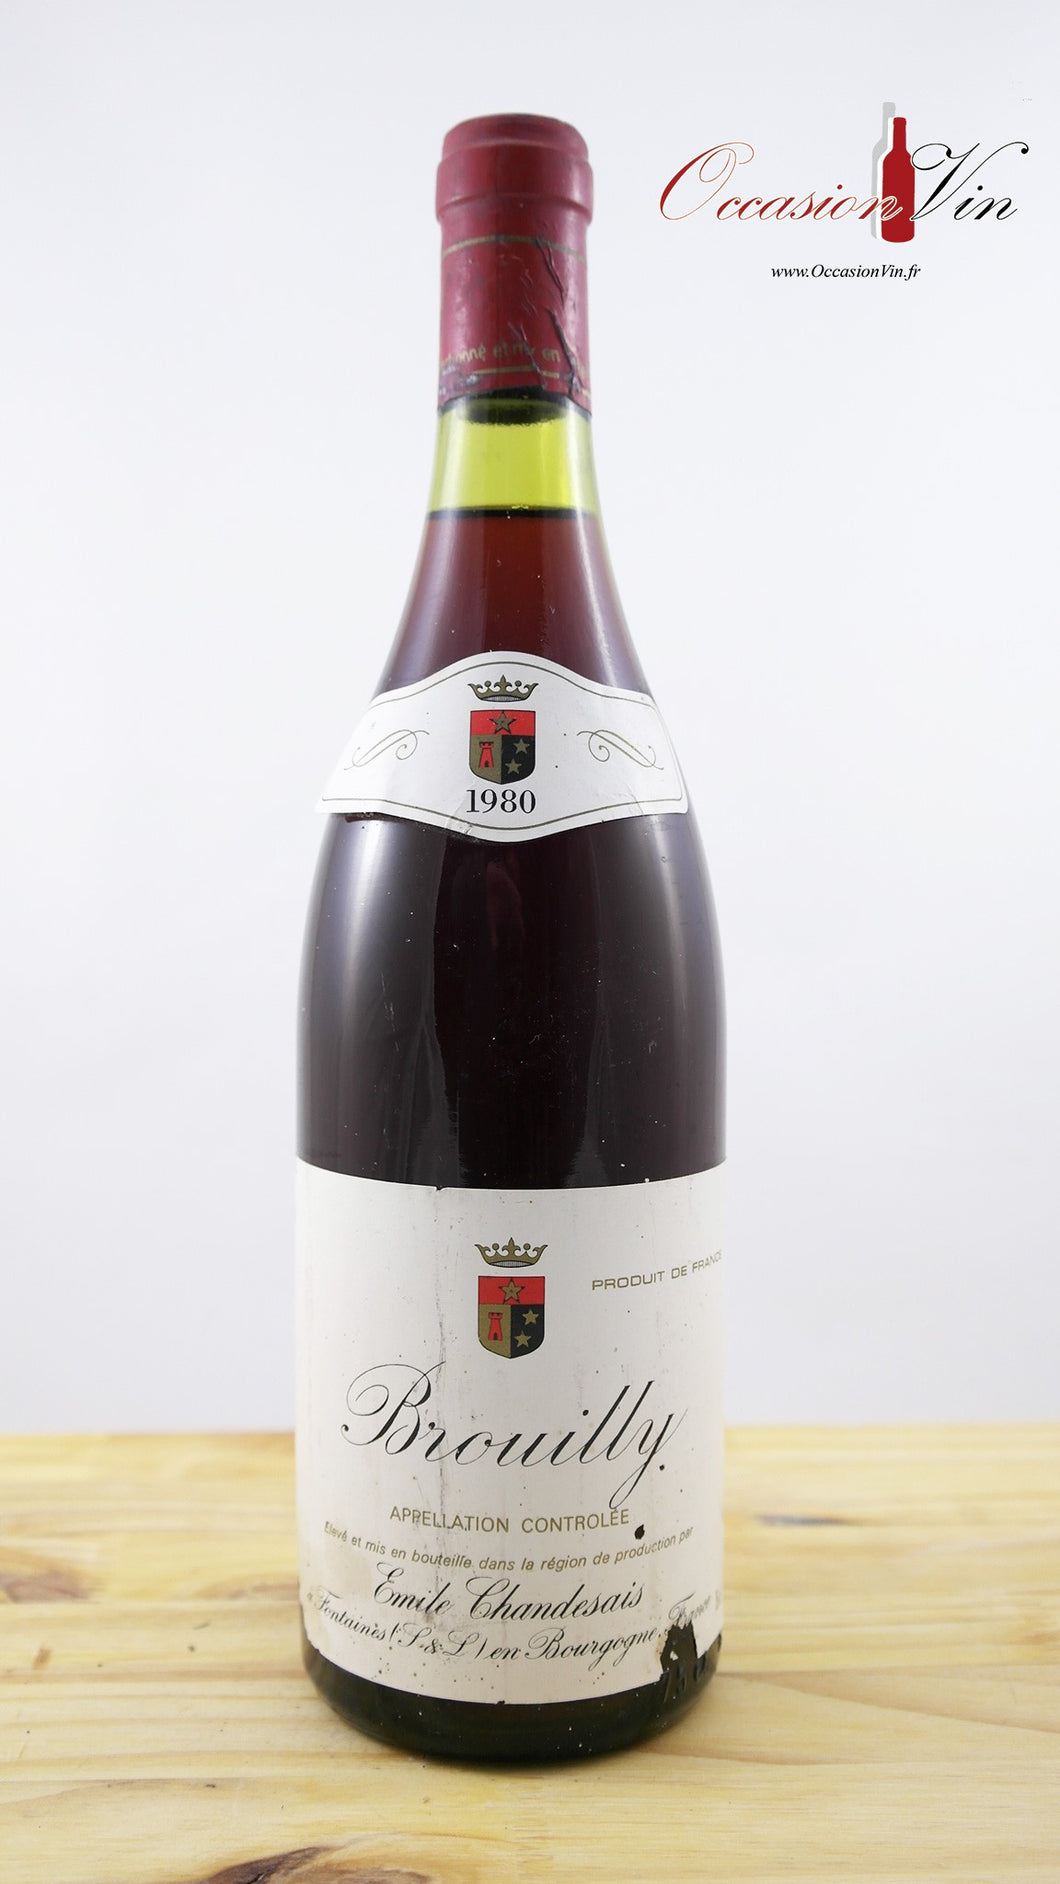 Brouilly Emilie Chandesais Vin 1980